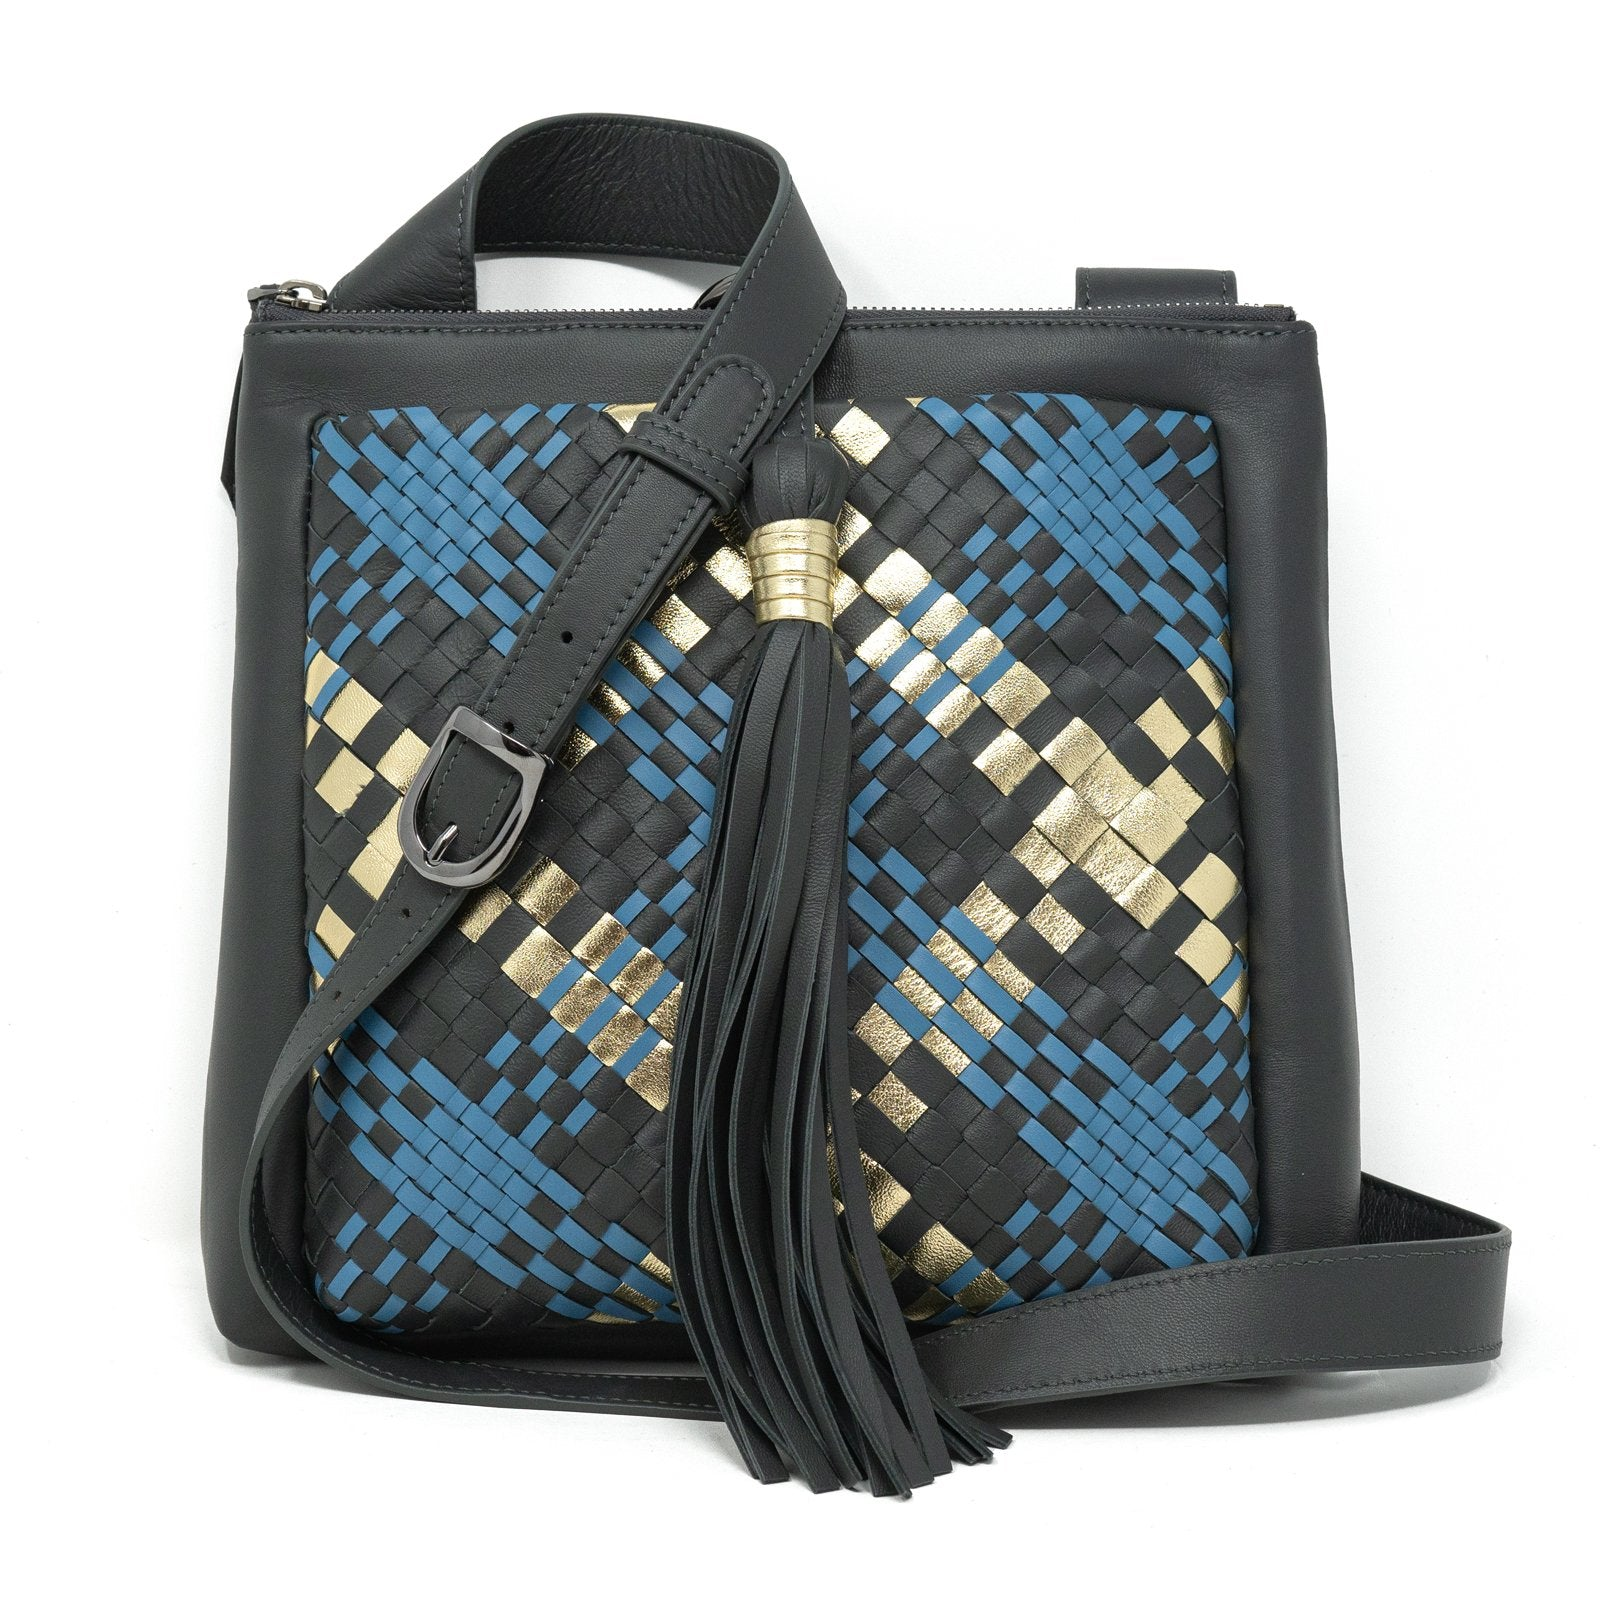 GINGER IS Crossbody Intrecciato Scozzese Bag in Graphite Gold Marine - Jennifer Tattanelli